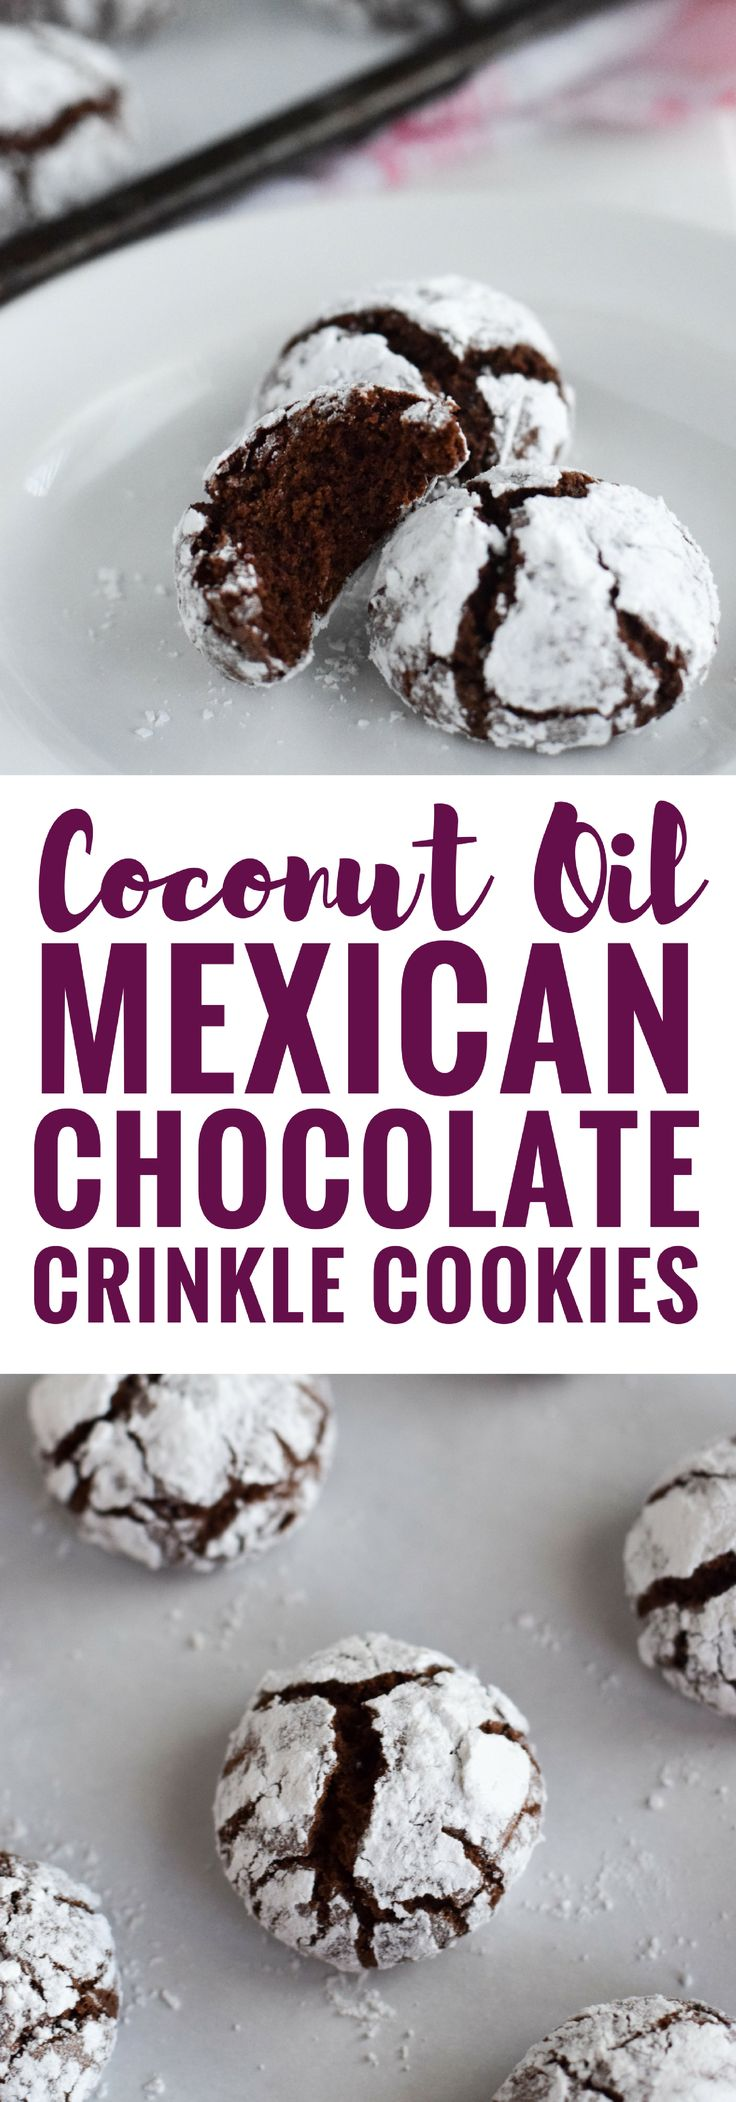 Classic holiday Chocolate Crinkle Cookies with a twist! Made with coconut oil and Abuelita Mexican chocolate, these festive cookies are soft, chewy and covered in powdered sugar.